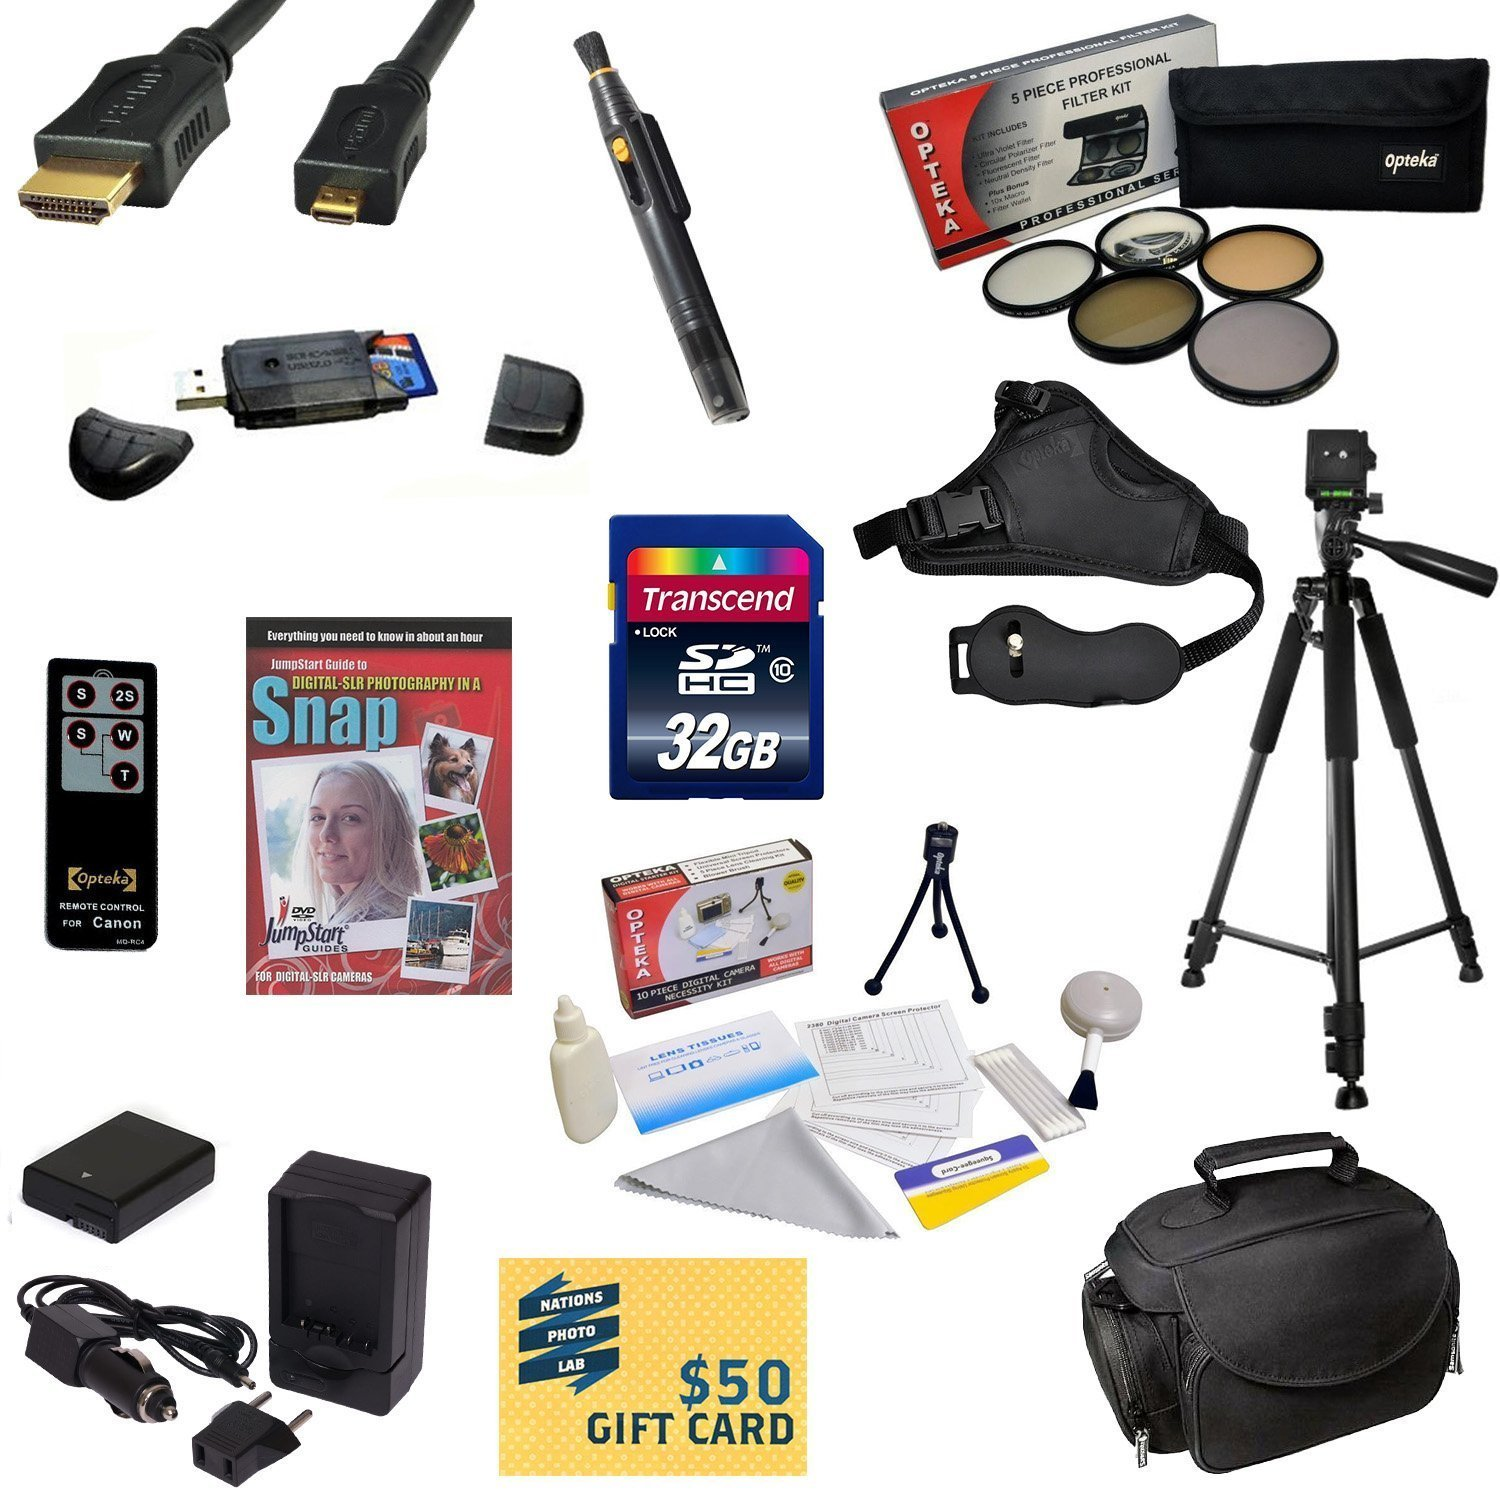 Must Have Kit for Nikon D7100 D7000 32GB SDHC Card, Card Reader, Battery, Charger, 67MM 5 Piece Pro Filter Kit, HDMI Cable, Padded Gadget Bag, Remote Control, Tripod, $50 Gift Card, More